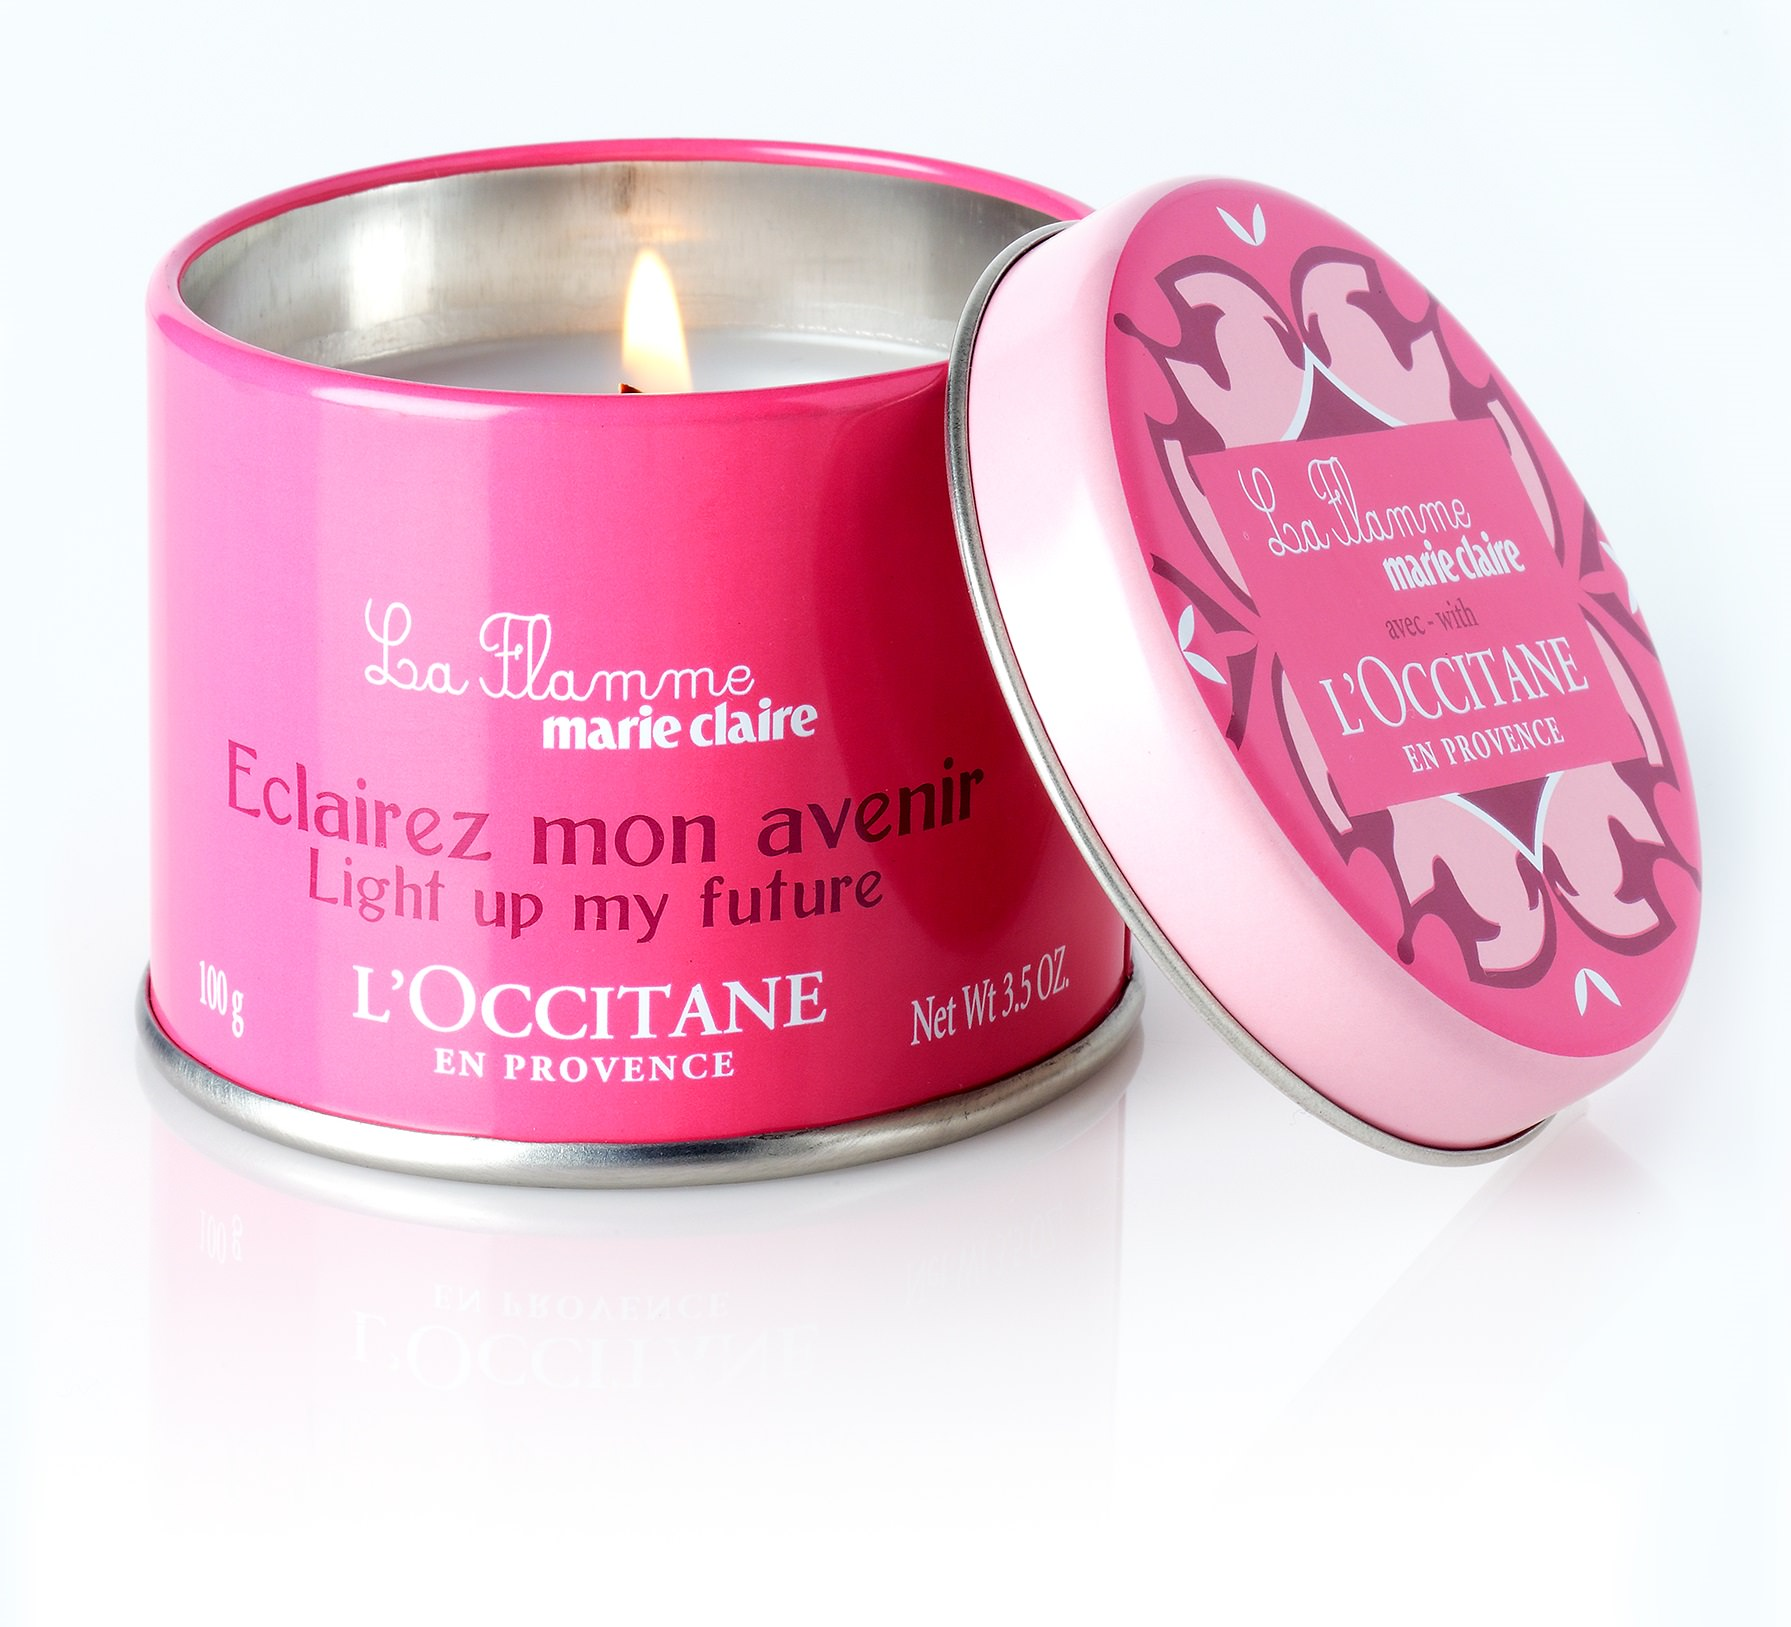 la-flamme-marie-claire_loccitane | Una guida autunnale. Coccolarsi come parola d'ordine. | A Gipsy in the Kitchen